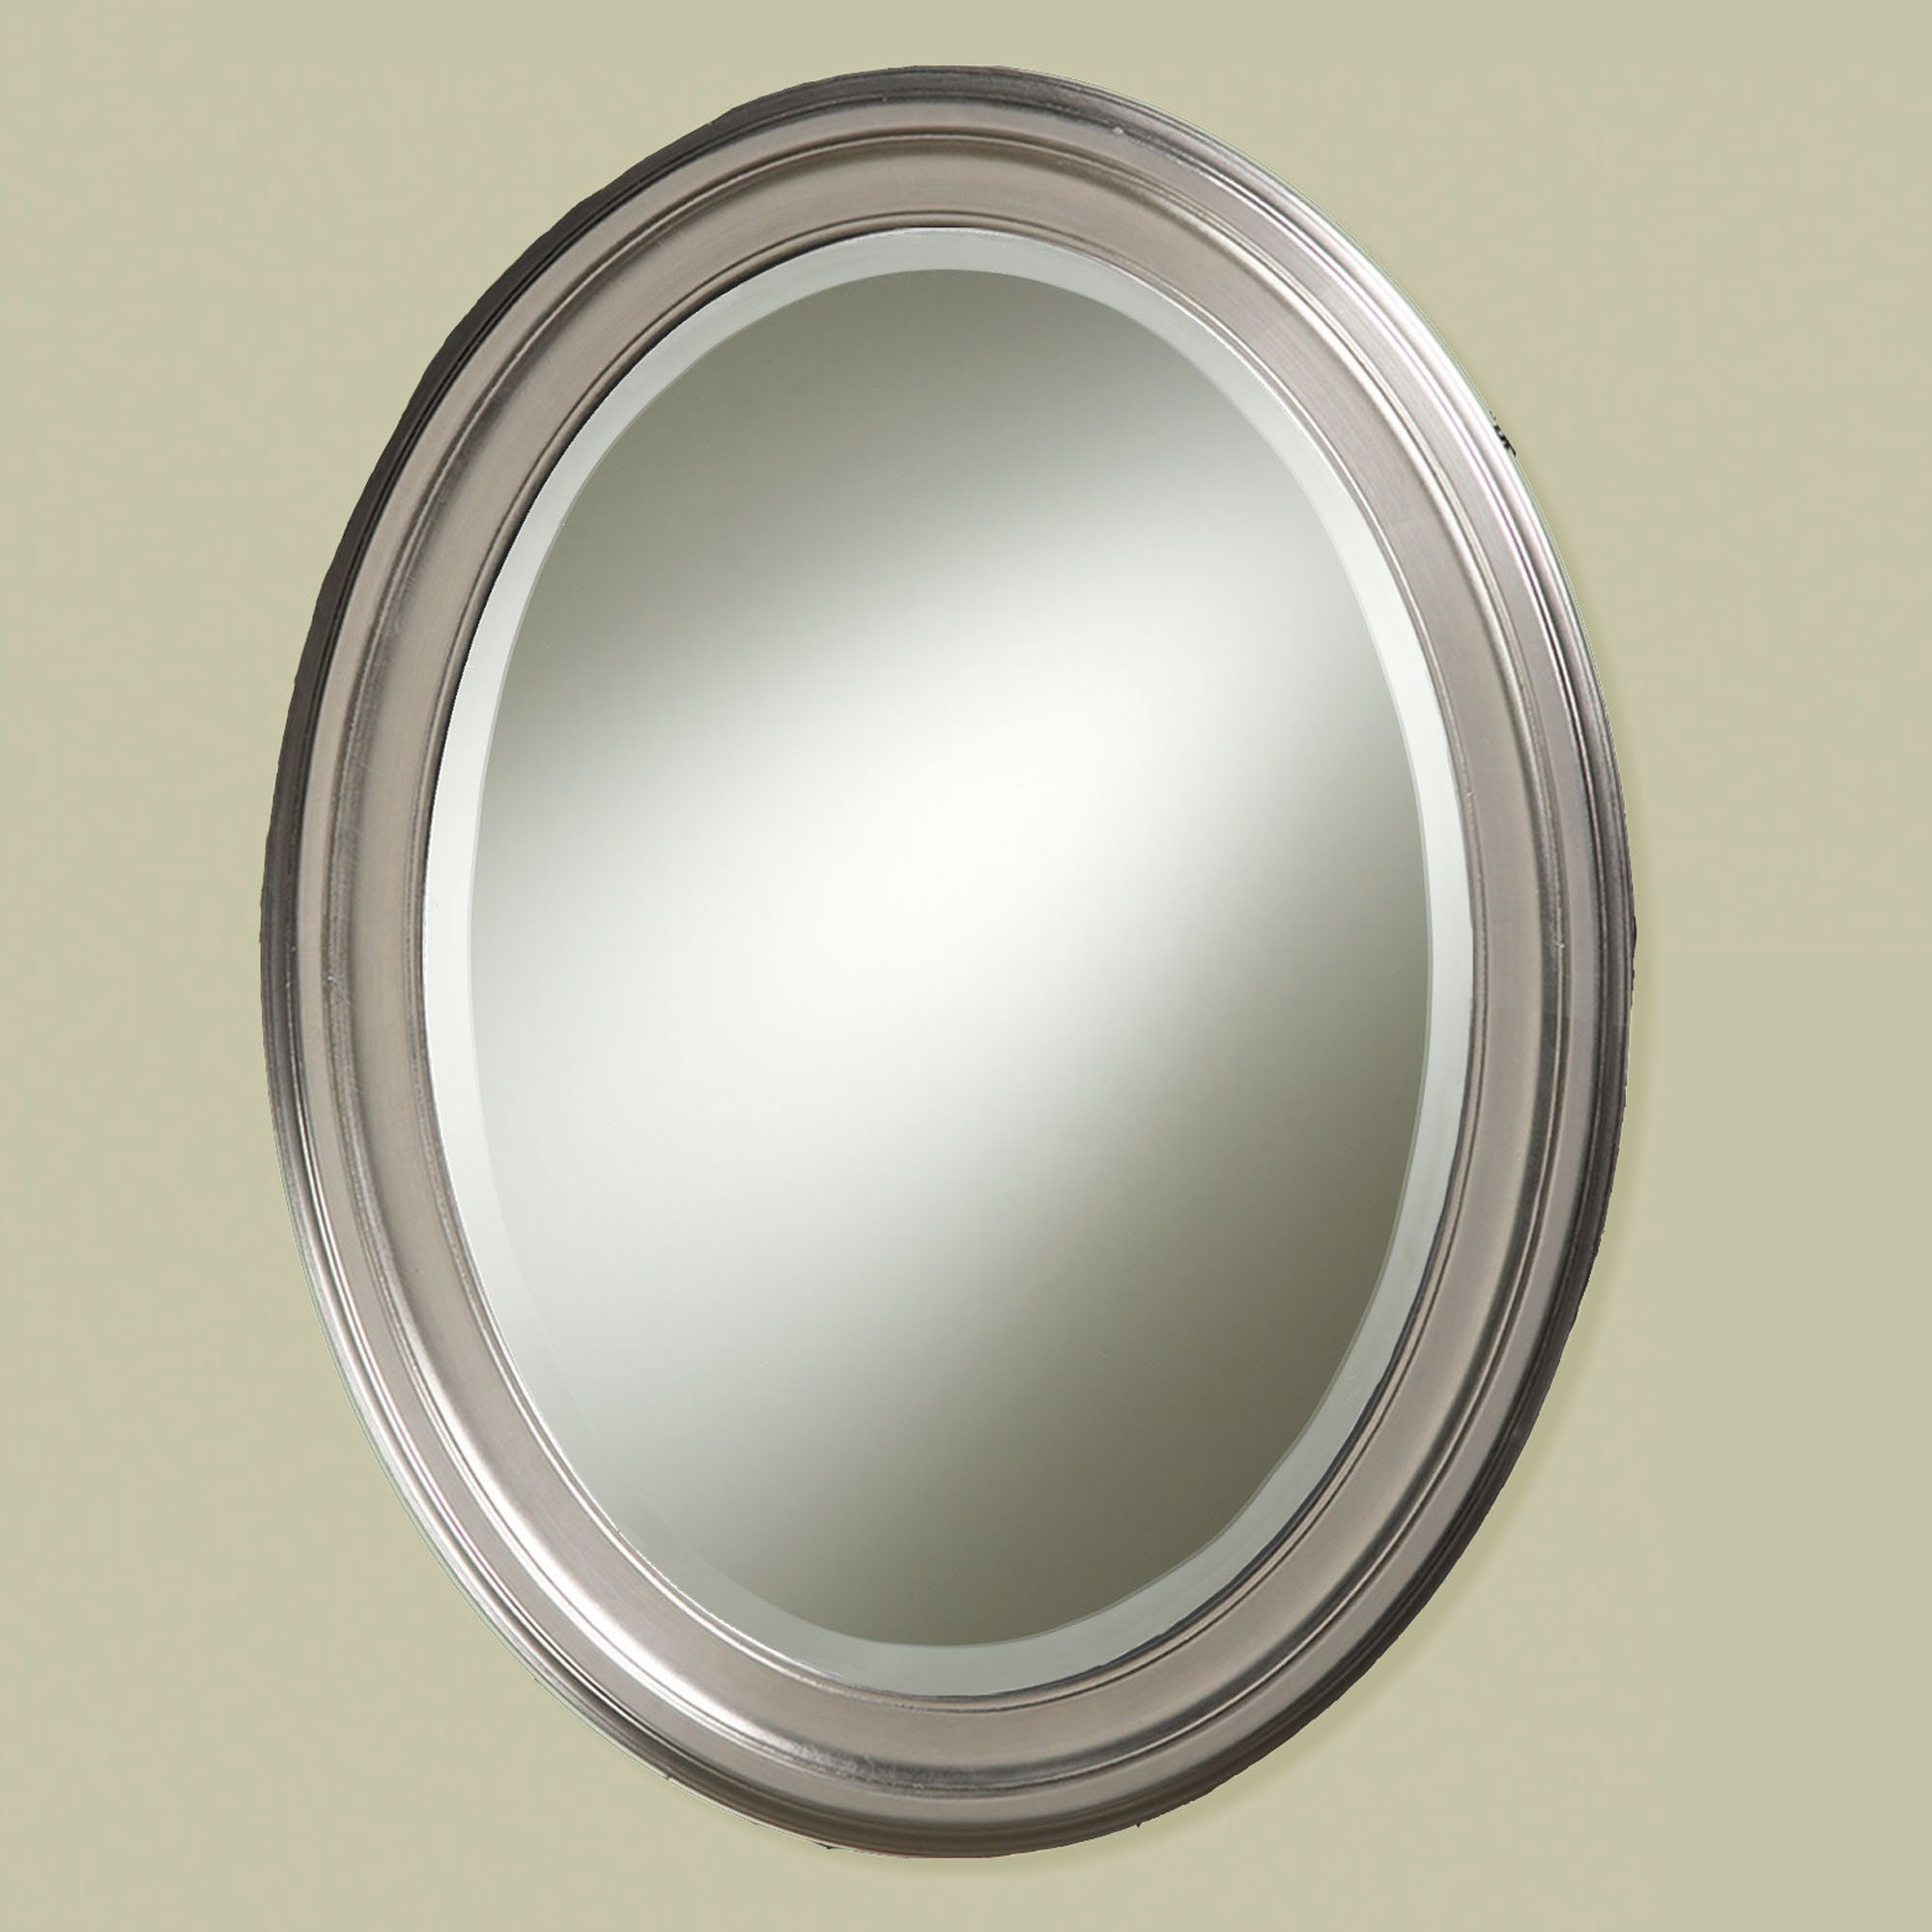 brushed nickel oval bathroom mirror  My Web Value